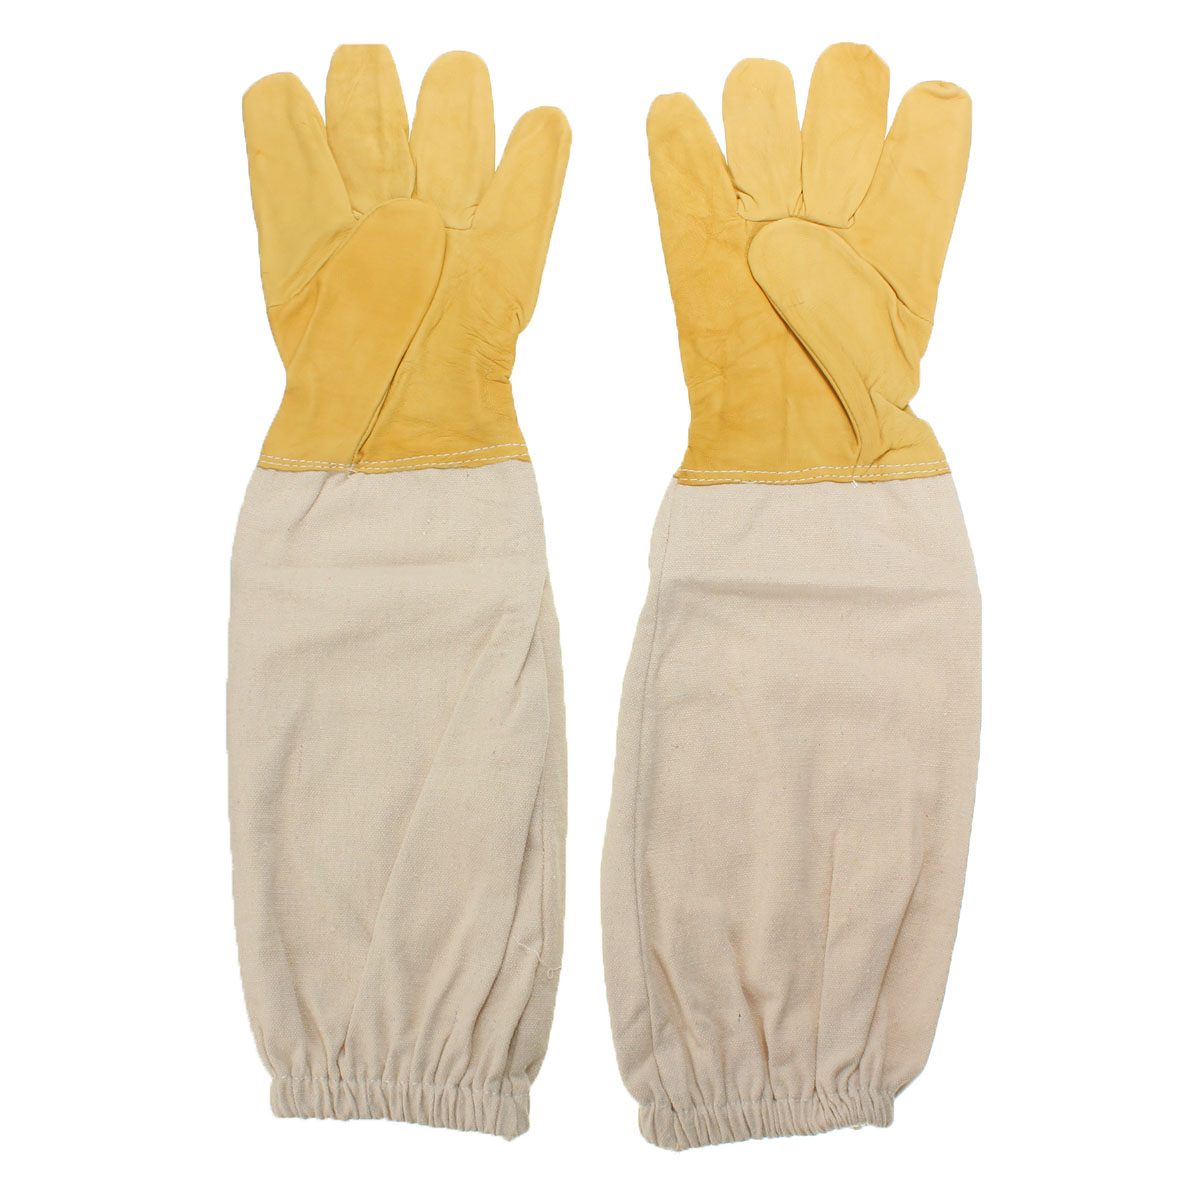 Yellow and white Pair Beekeeping Goatskin Cape Gloves XXL Sheepskin W/ Vented Long Sleeves Guard New кий для пула 2 pc valhalla 007